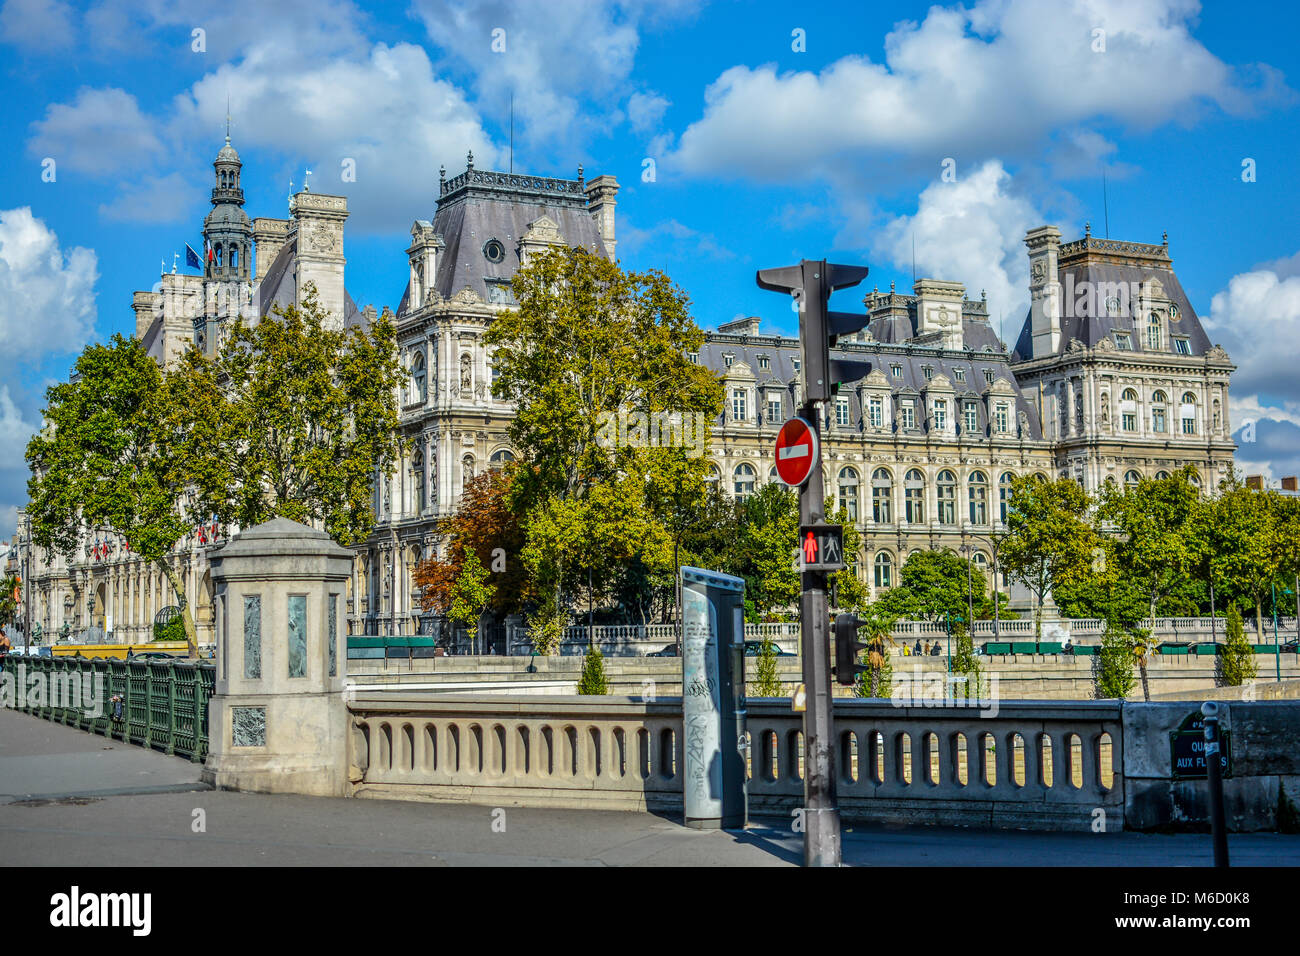 The Hôtel de Ville in Paris, France housing the city's local administration in the 4th arrondissement - Stock Image